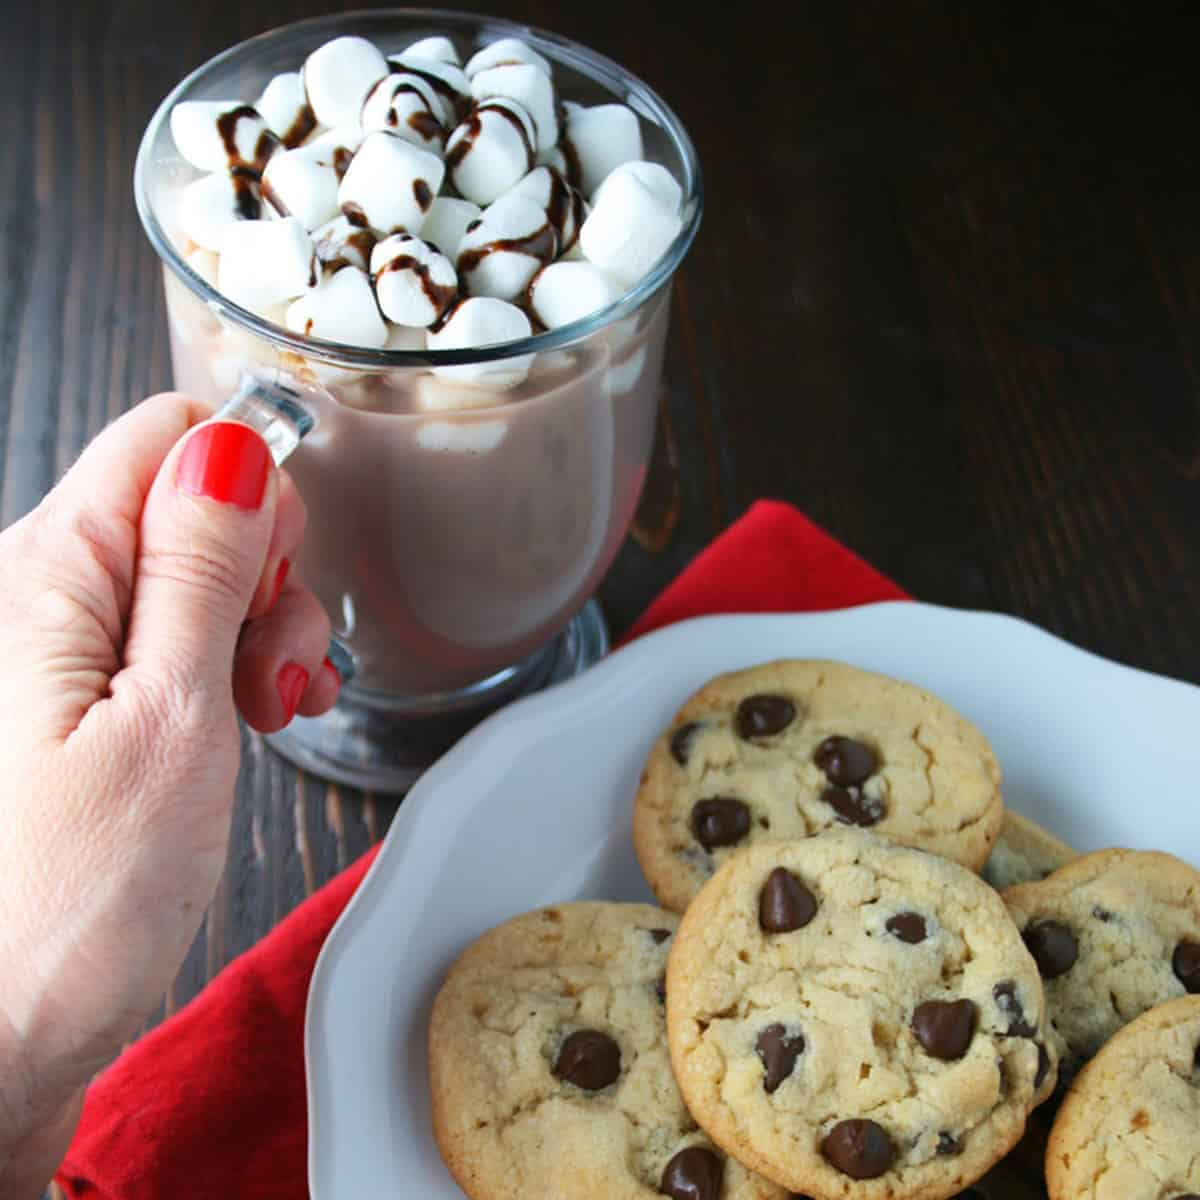 recipe: how to make hot chocolate with chocolate chips and milk